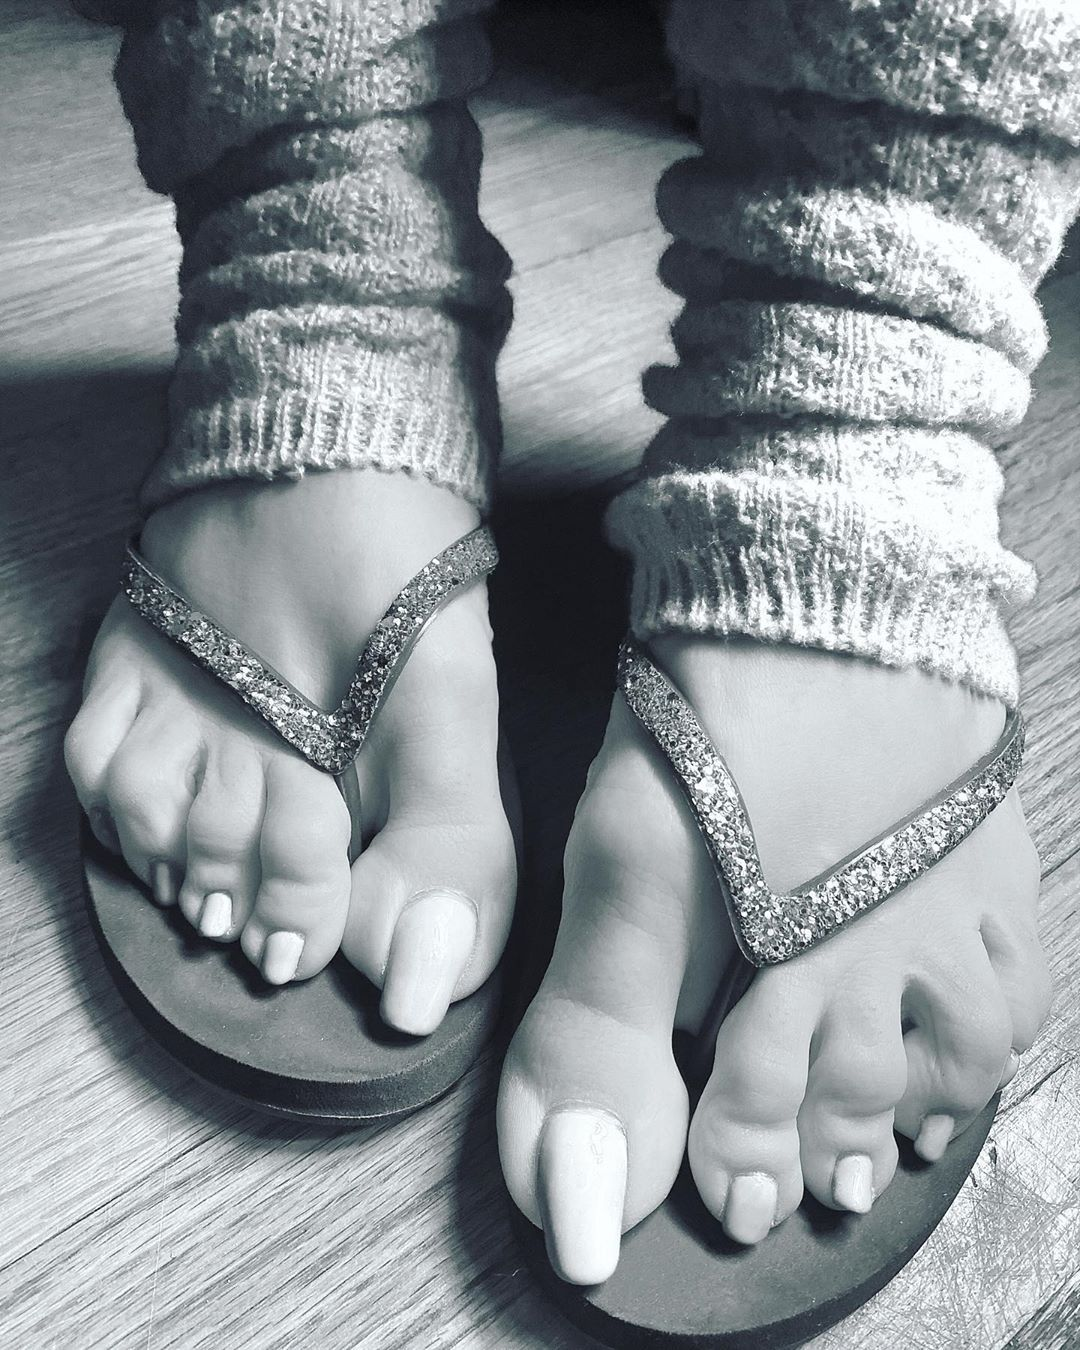 Onlyfans For Feet photo 24